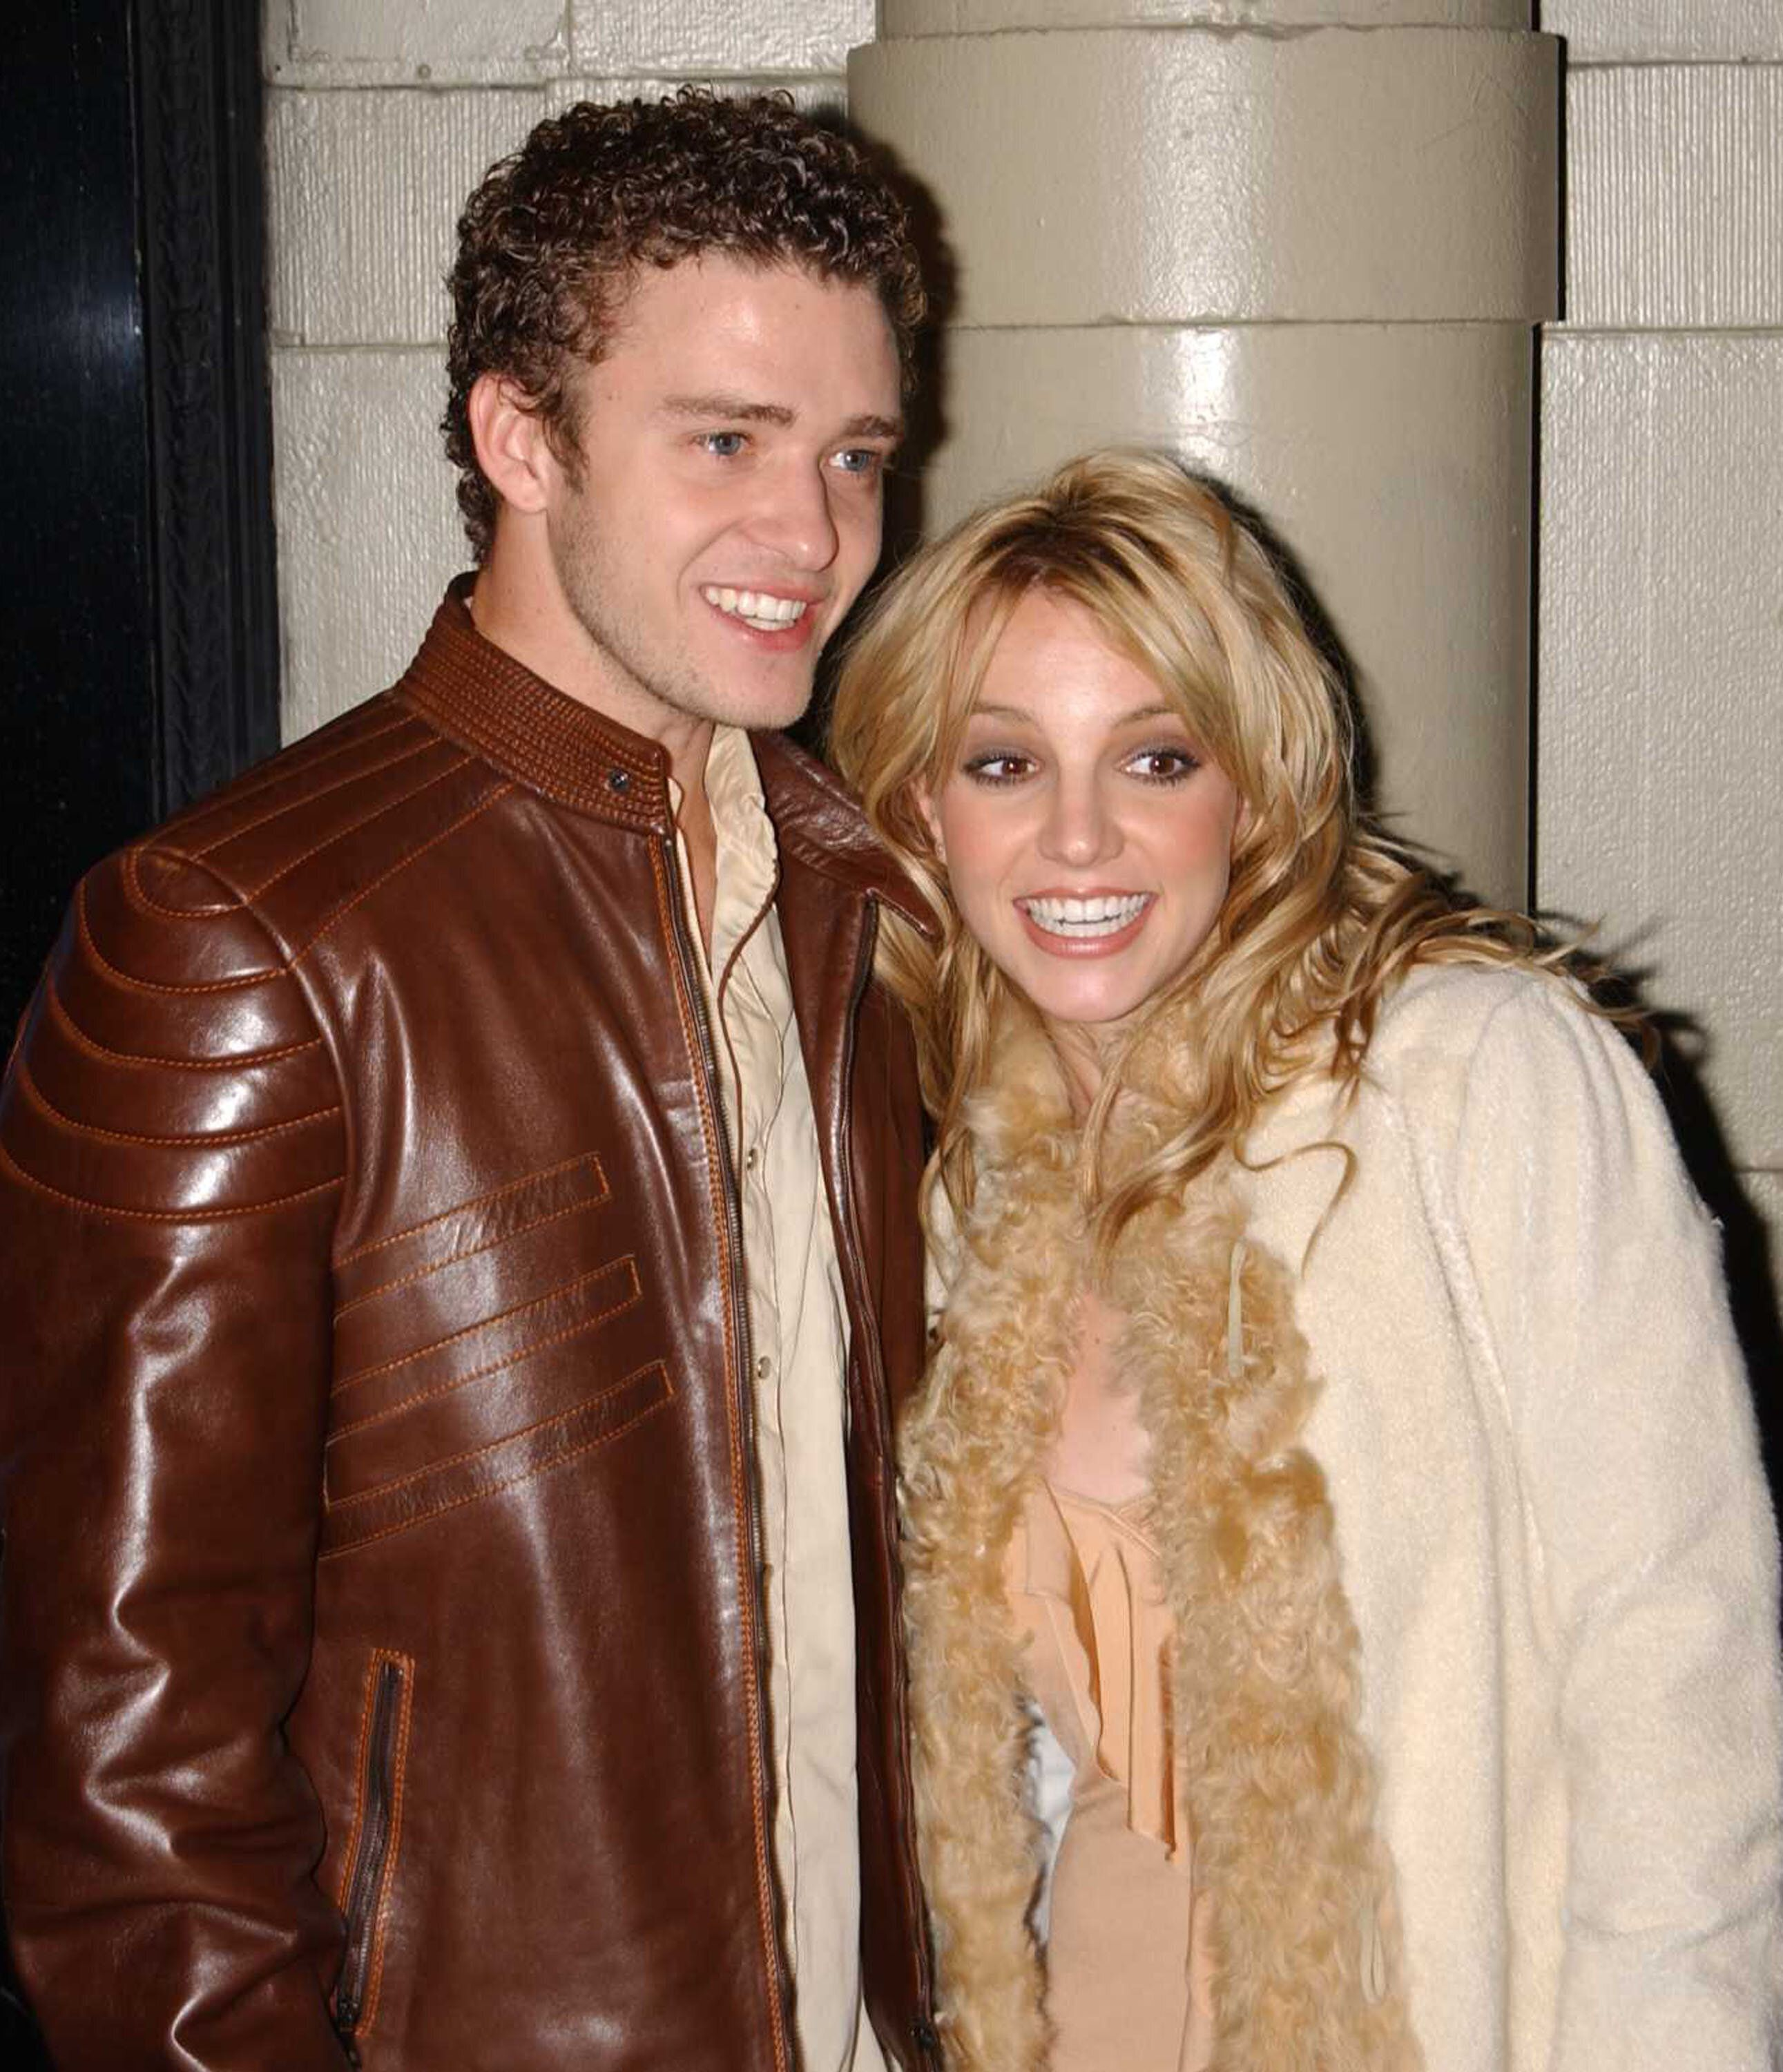 Justin Timberlake and Britney Spears in